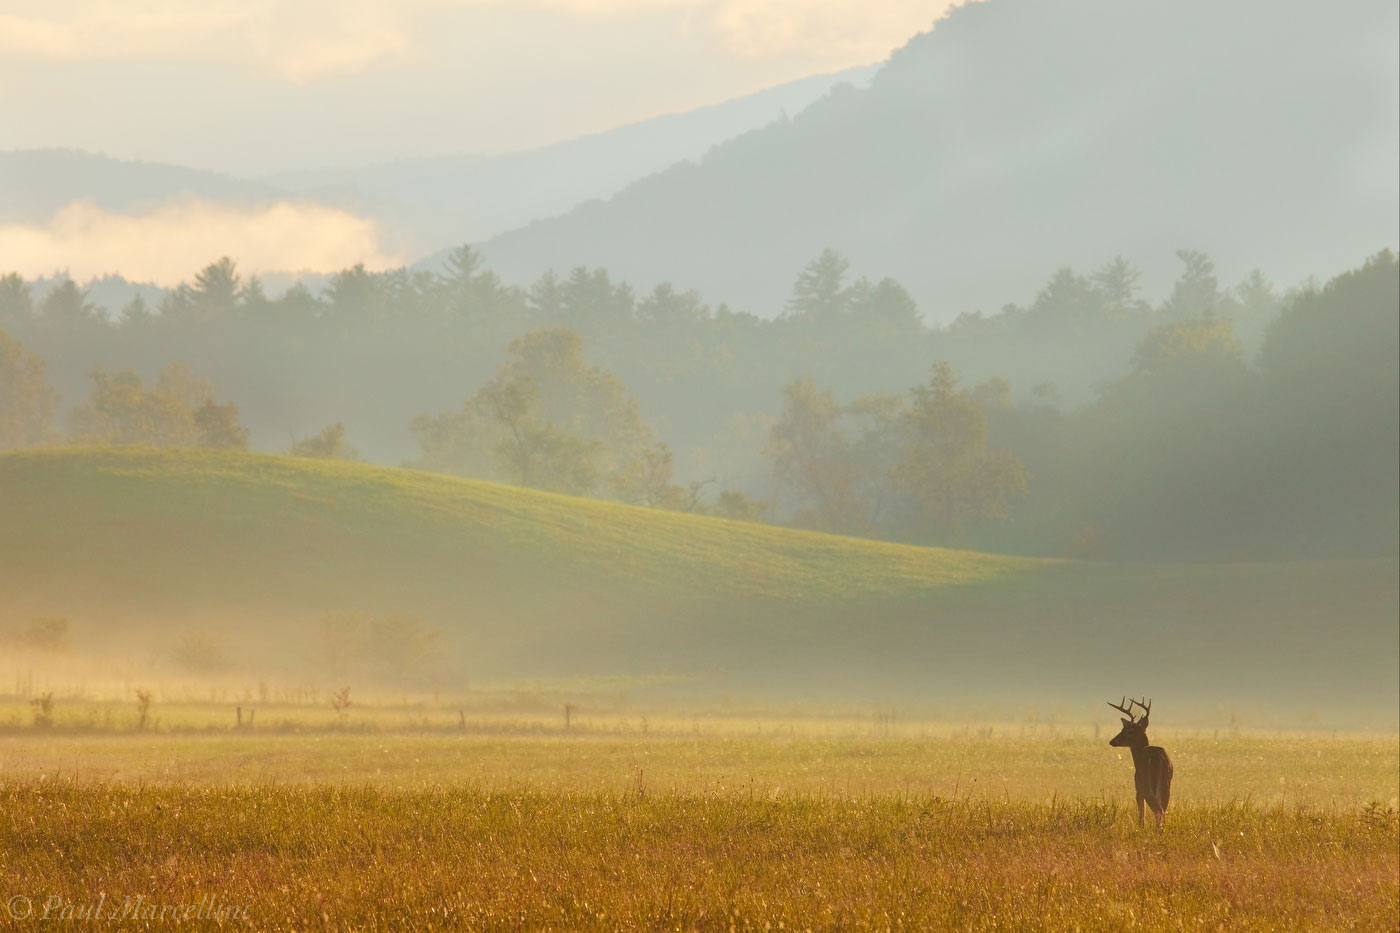 Odocoileus virginianus, white-tailed deer, cades cove, great smoky mountains national park, fog, morning, deer, photo